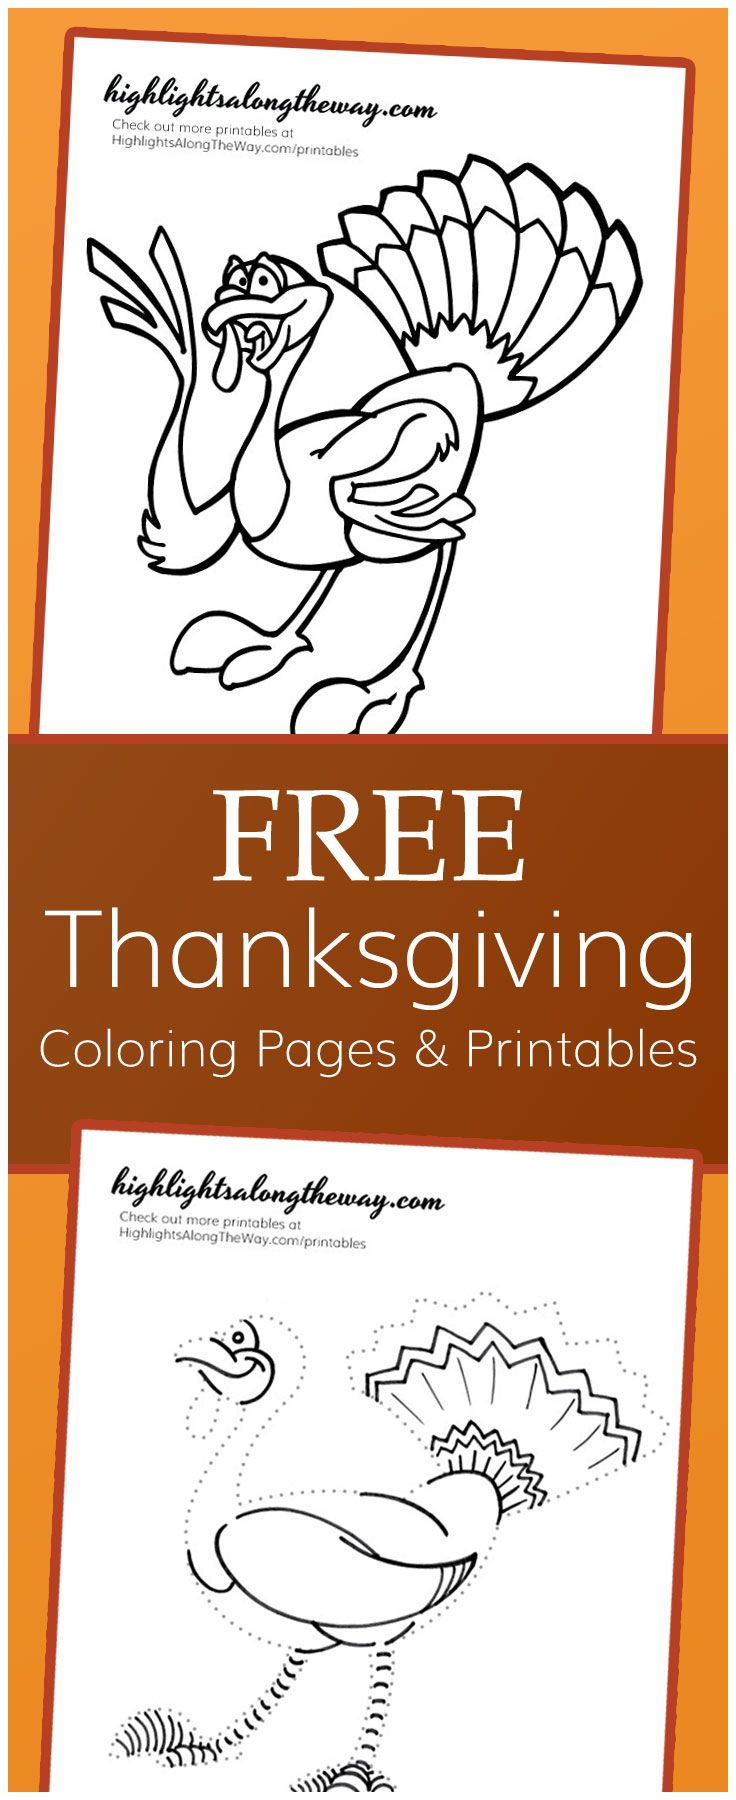 Thanksgiving coloring pages - printable cartoon turkeys ...